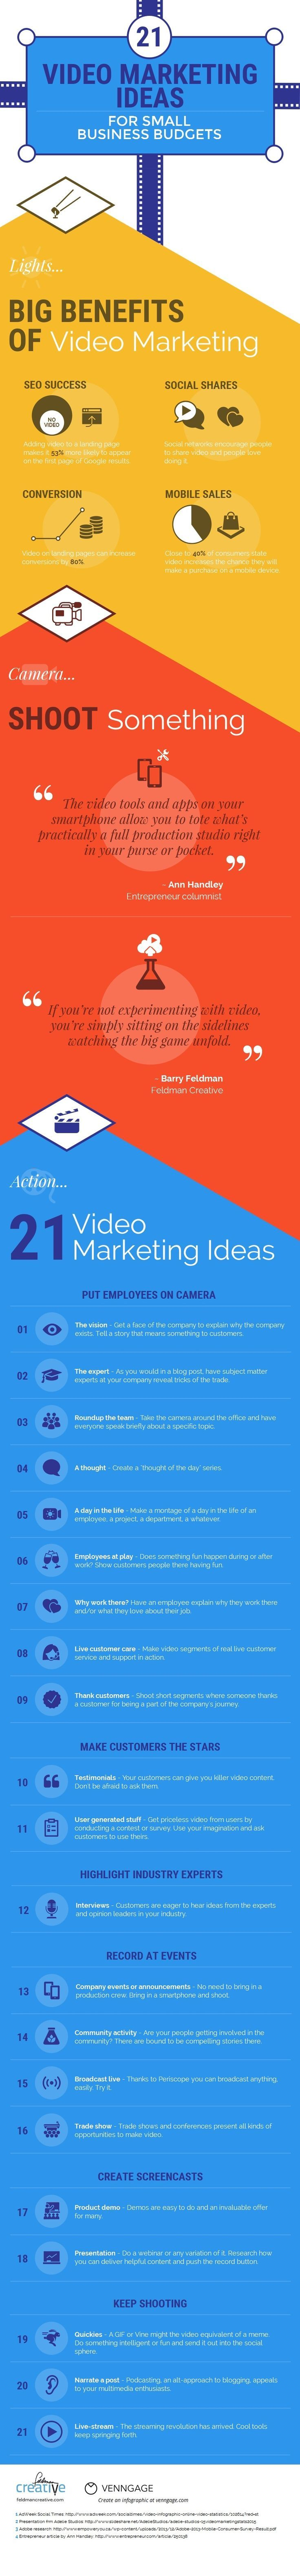 #Content - Making captivating and effective marketing videos doesn't cost as much as you think. #Web #Marketing #Business #Entrepreneur #Startup #Digital #Tech